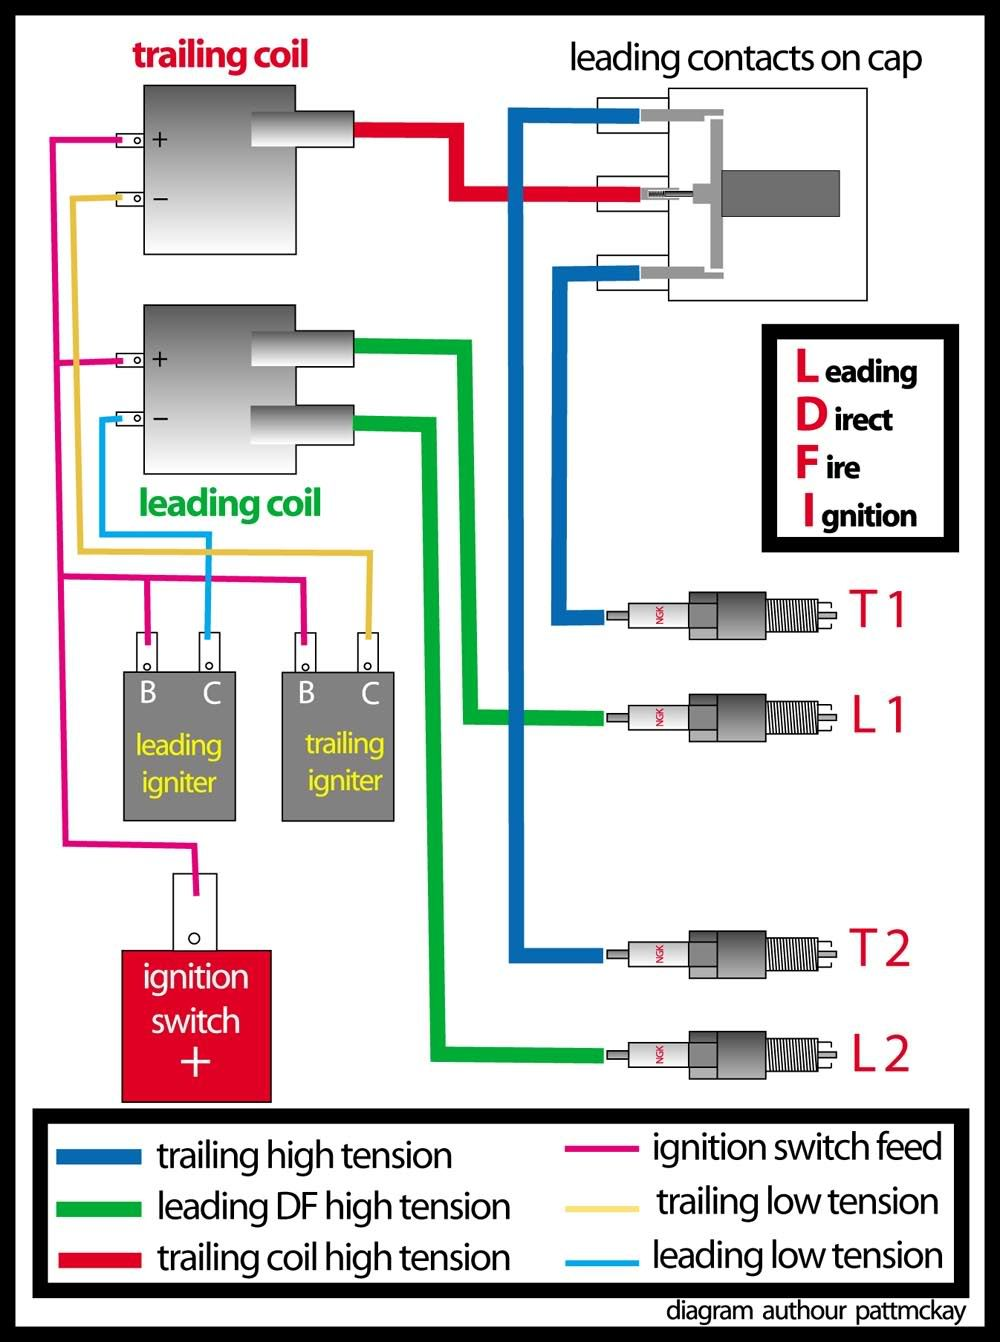 f51a9f8accfbb2accd16cb3edbec5003 here is a simple wiring diagram for a single leading direct fire mazda rx7 spark plug wiring diagram at crackthecode.co